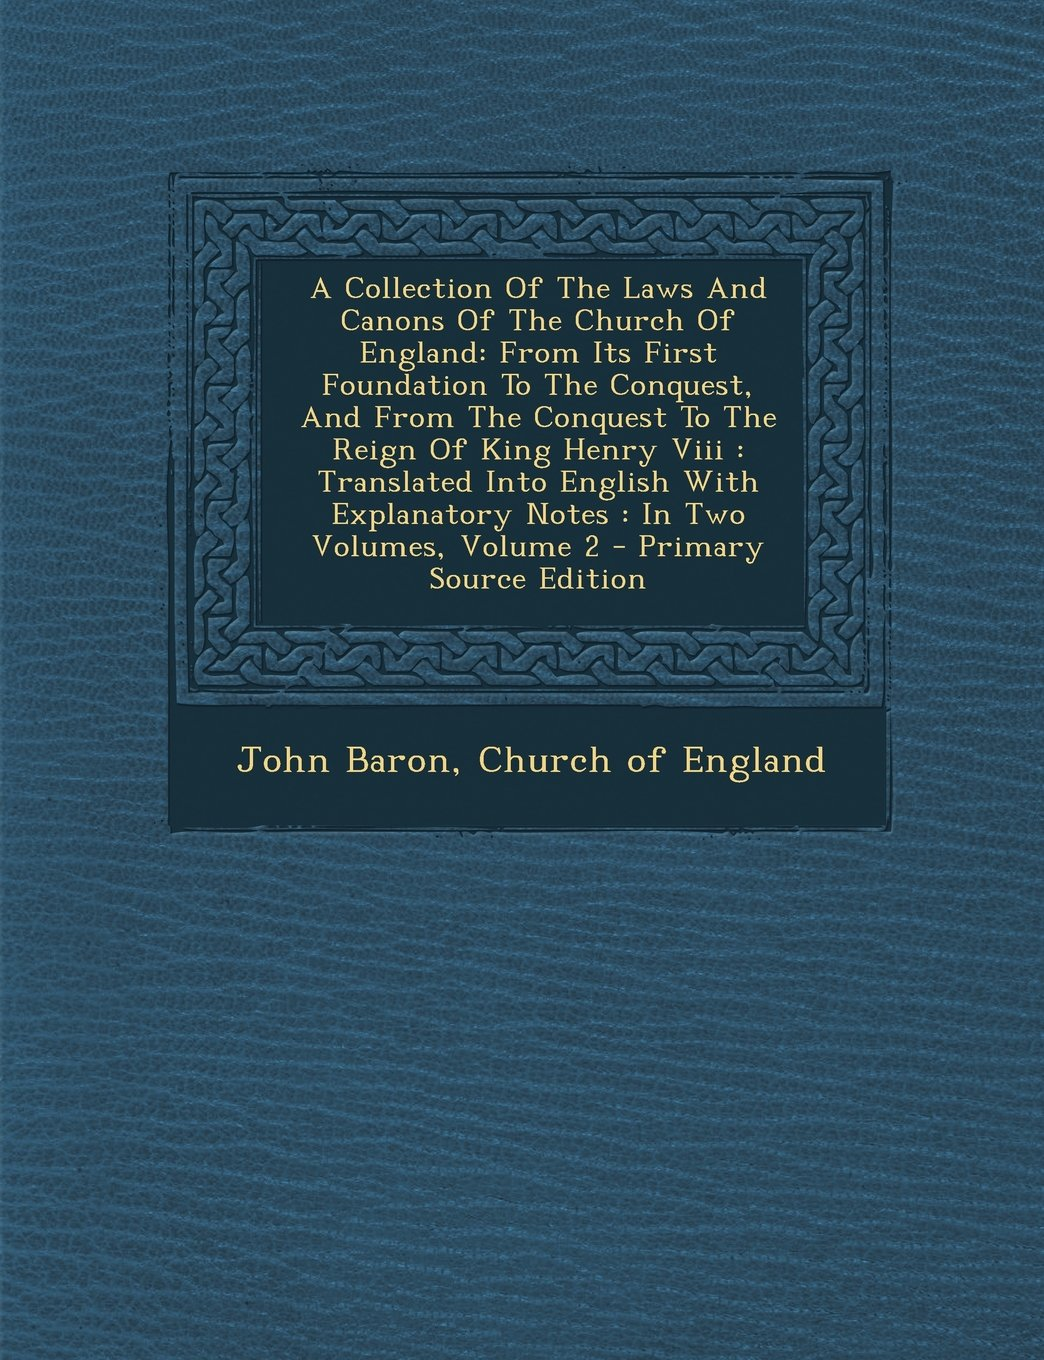 A Collection Of The Laws And Canons Of The Church Of England: From Its First Foundation To The Conquest, And From The Conquest To The Reign Of King ... Explanatory Notes : In Two Volumes, Volume 2 pdf epub